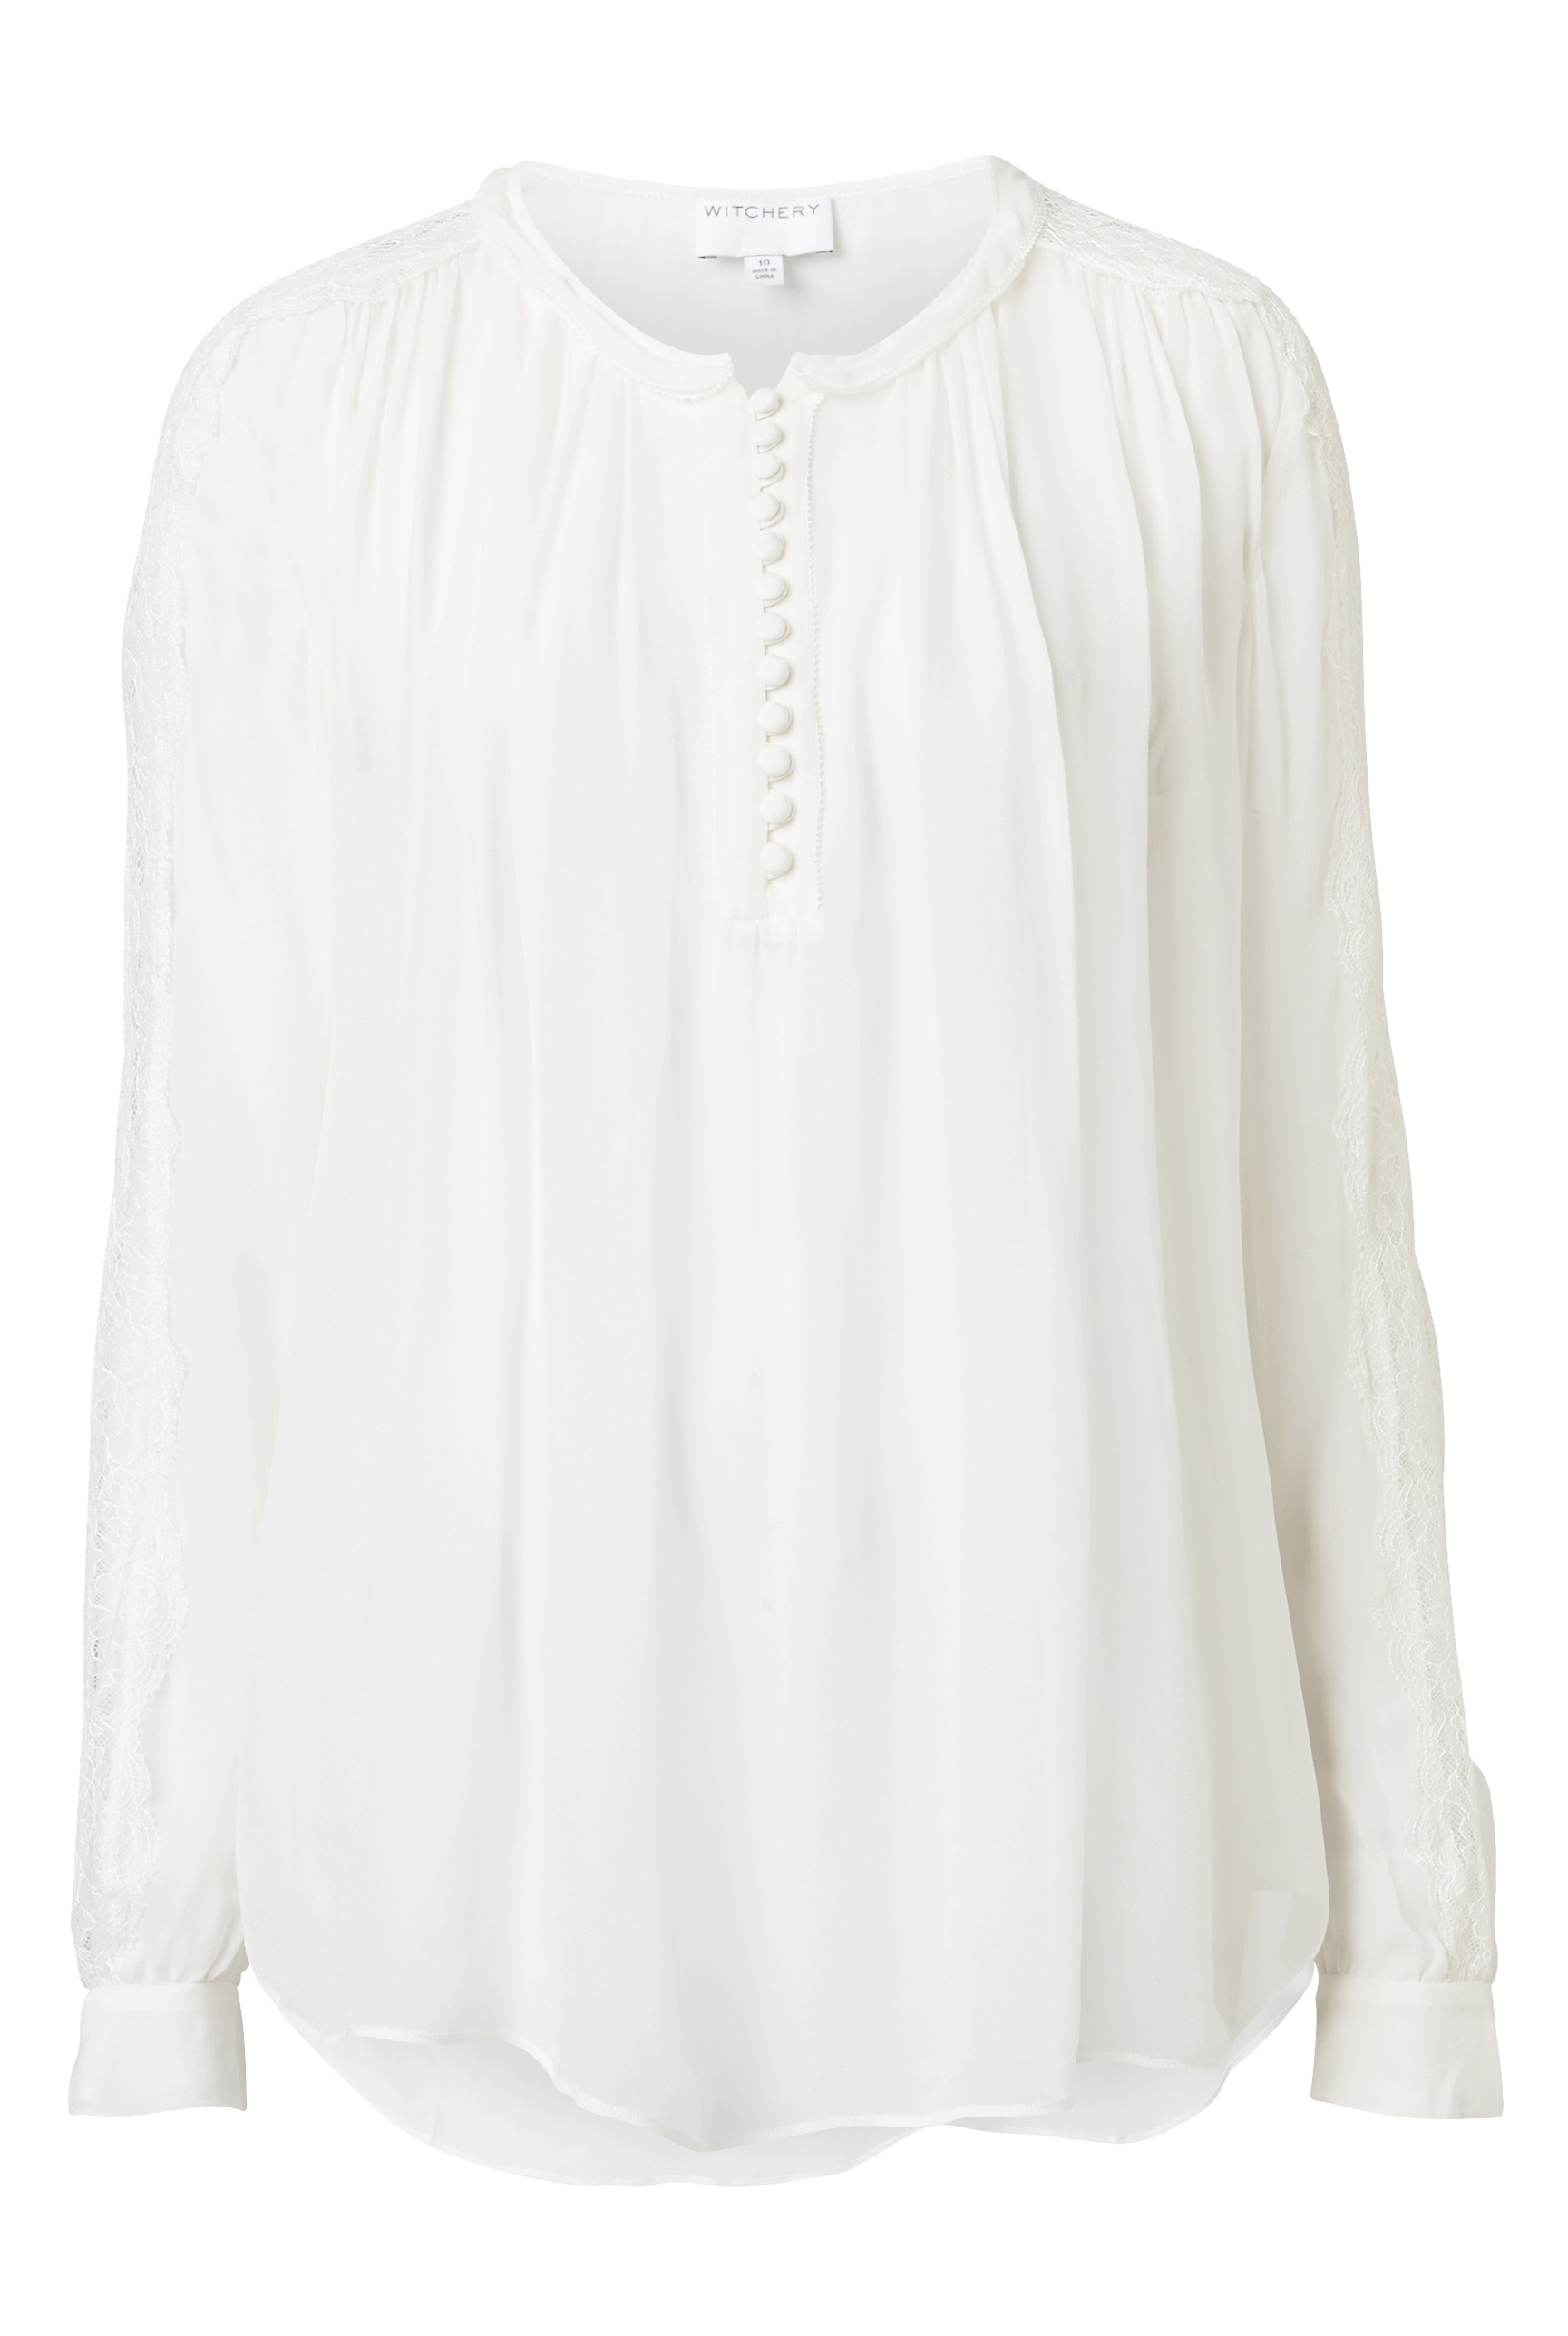 60196804_Witchery Lace Insert Top, RRP $149.90